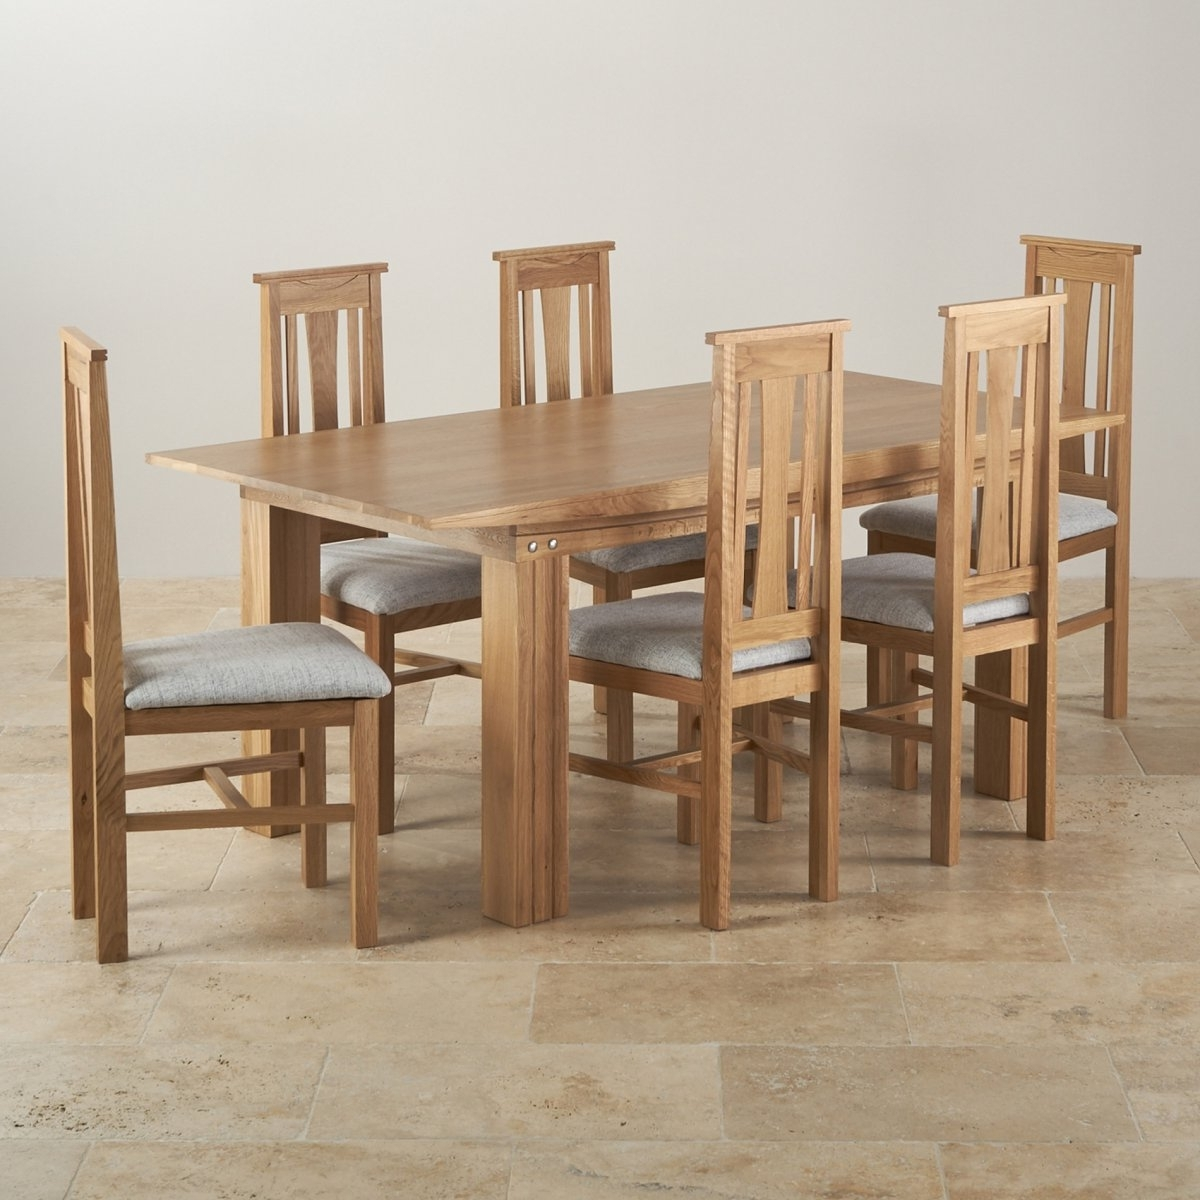 Tokyo Dining Tables Within Most Recent Tokyo Dining Set In Oak: 6Ft Dining Table 6 Grey Fabric, Dining (View 11 of 25)